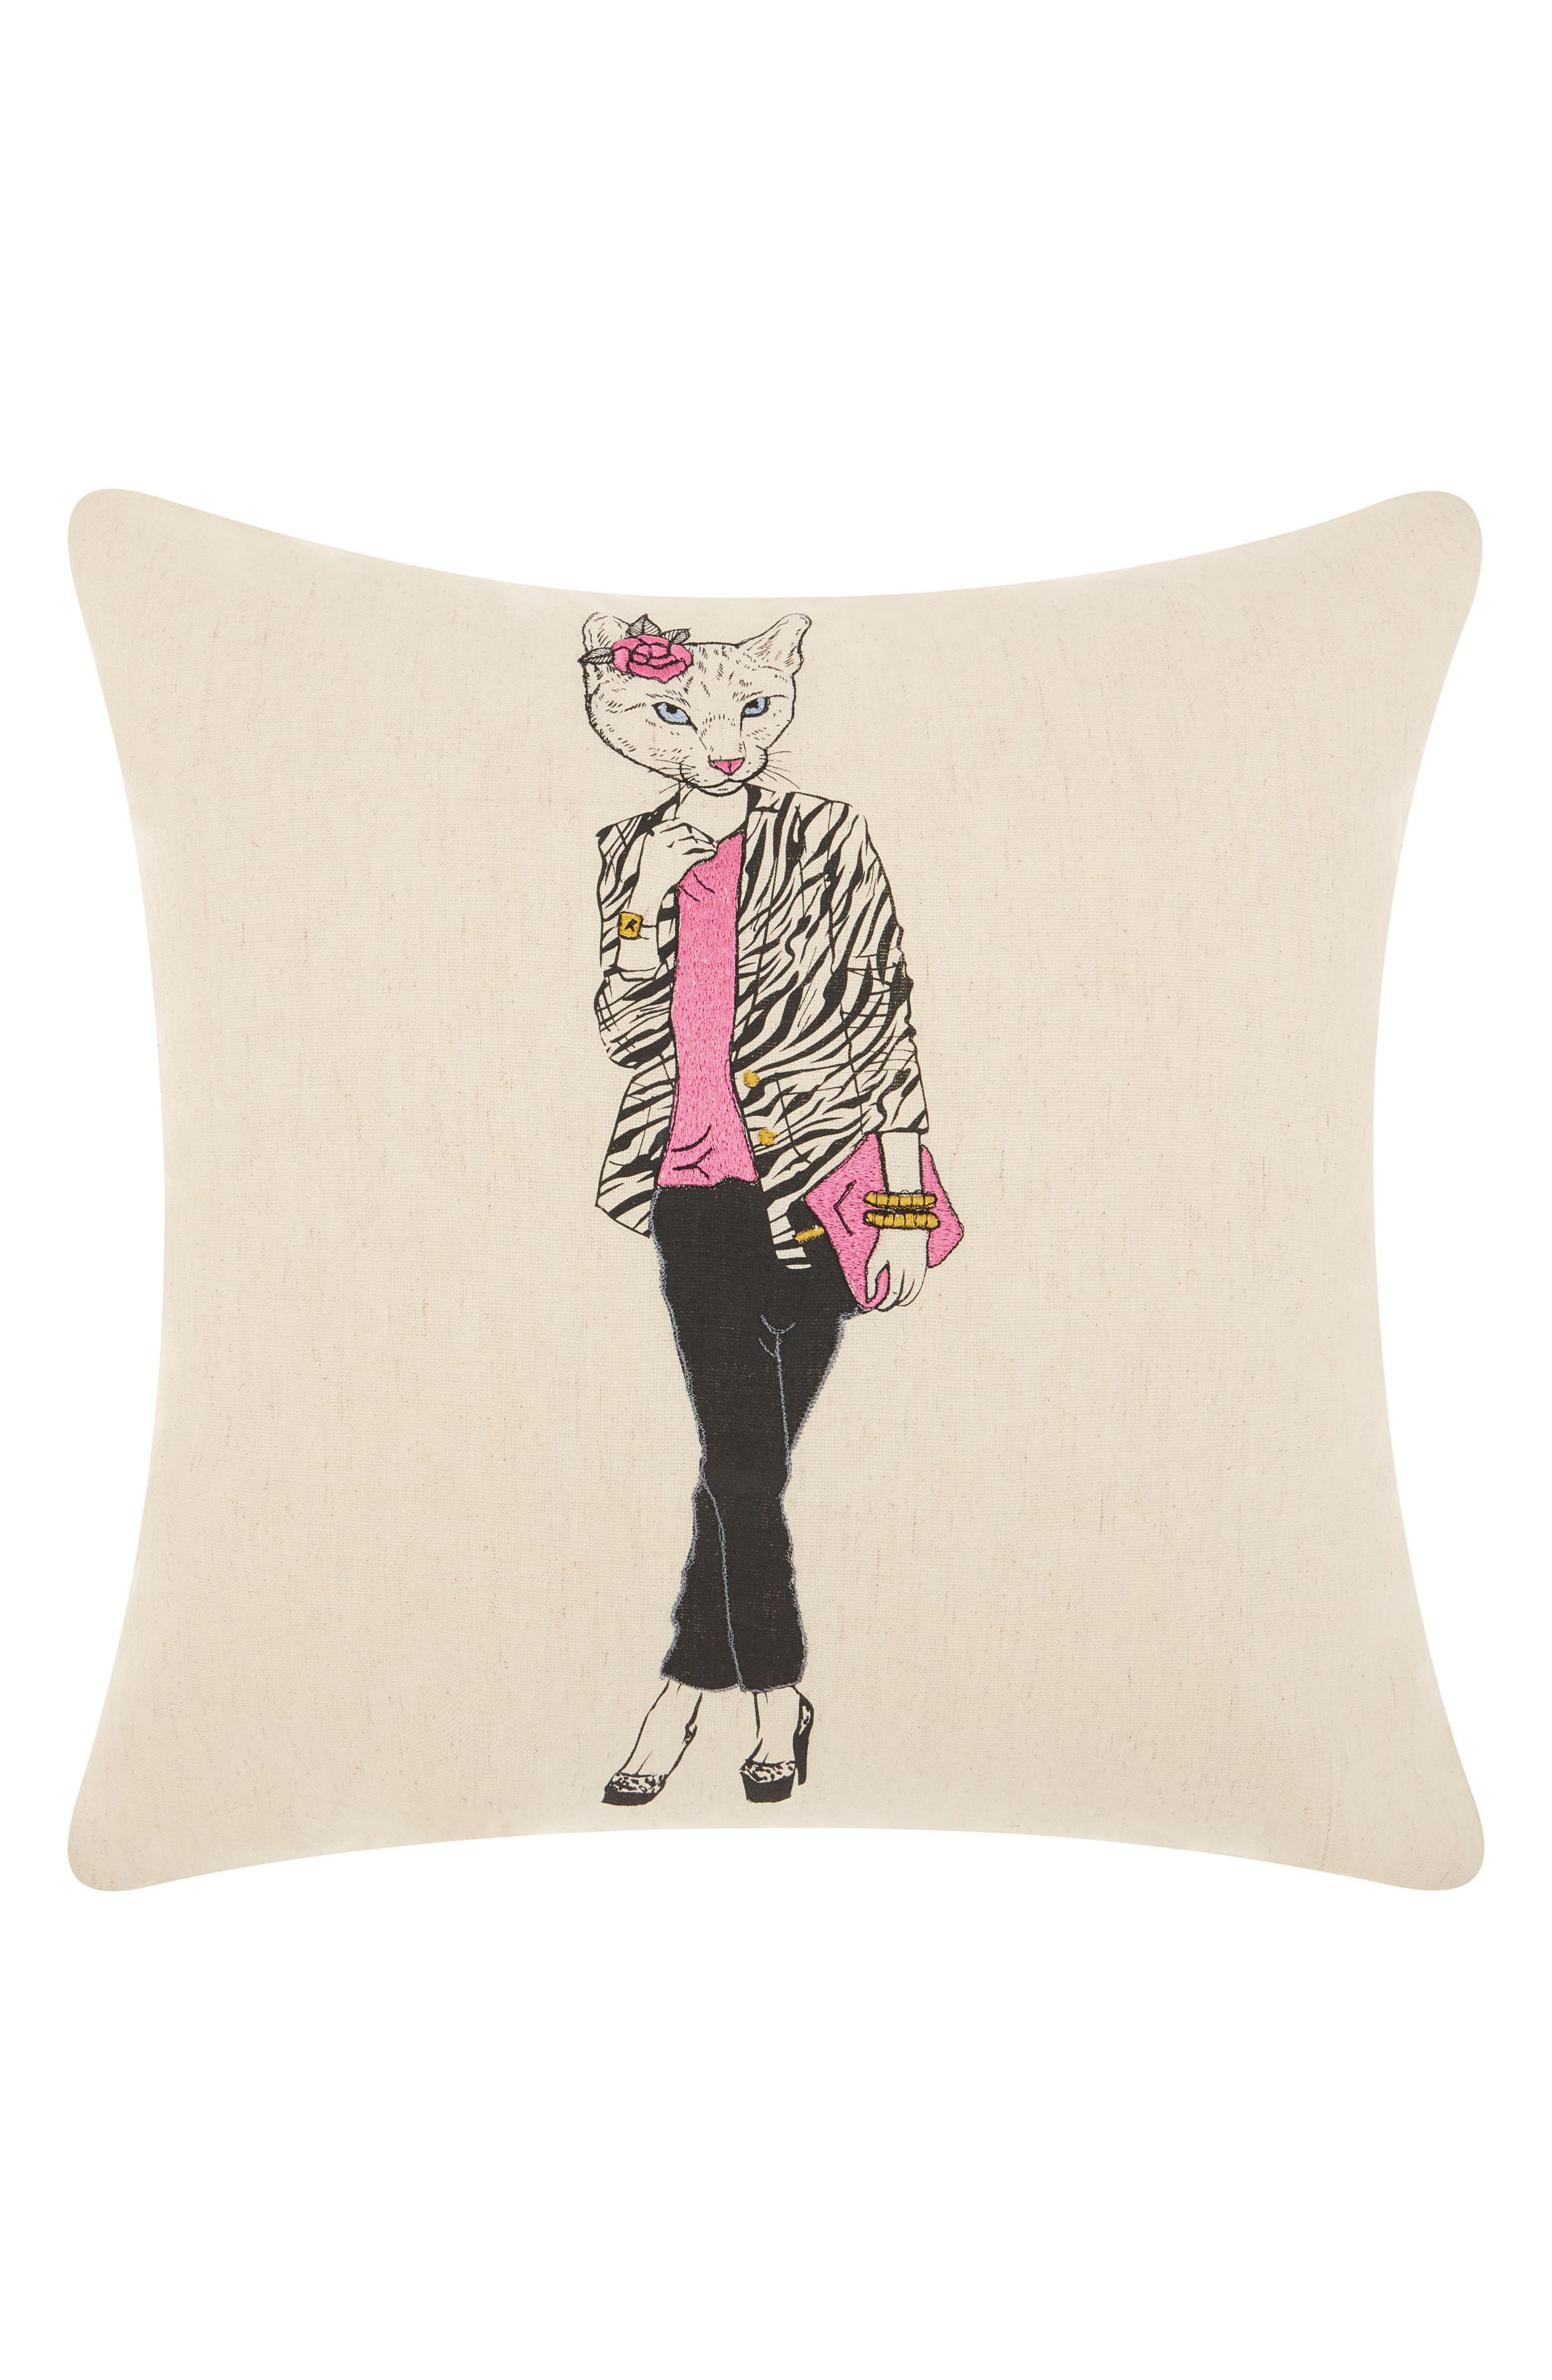 Main Image - Mina Victory Classy Kitty Accent Pillow